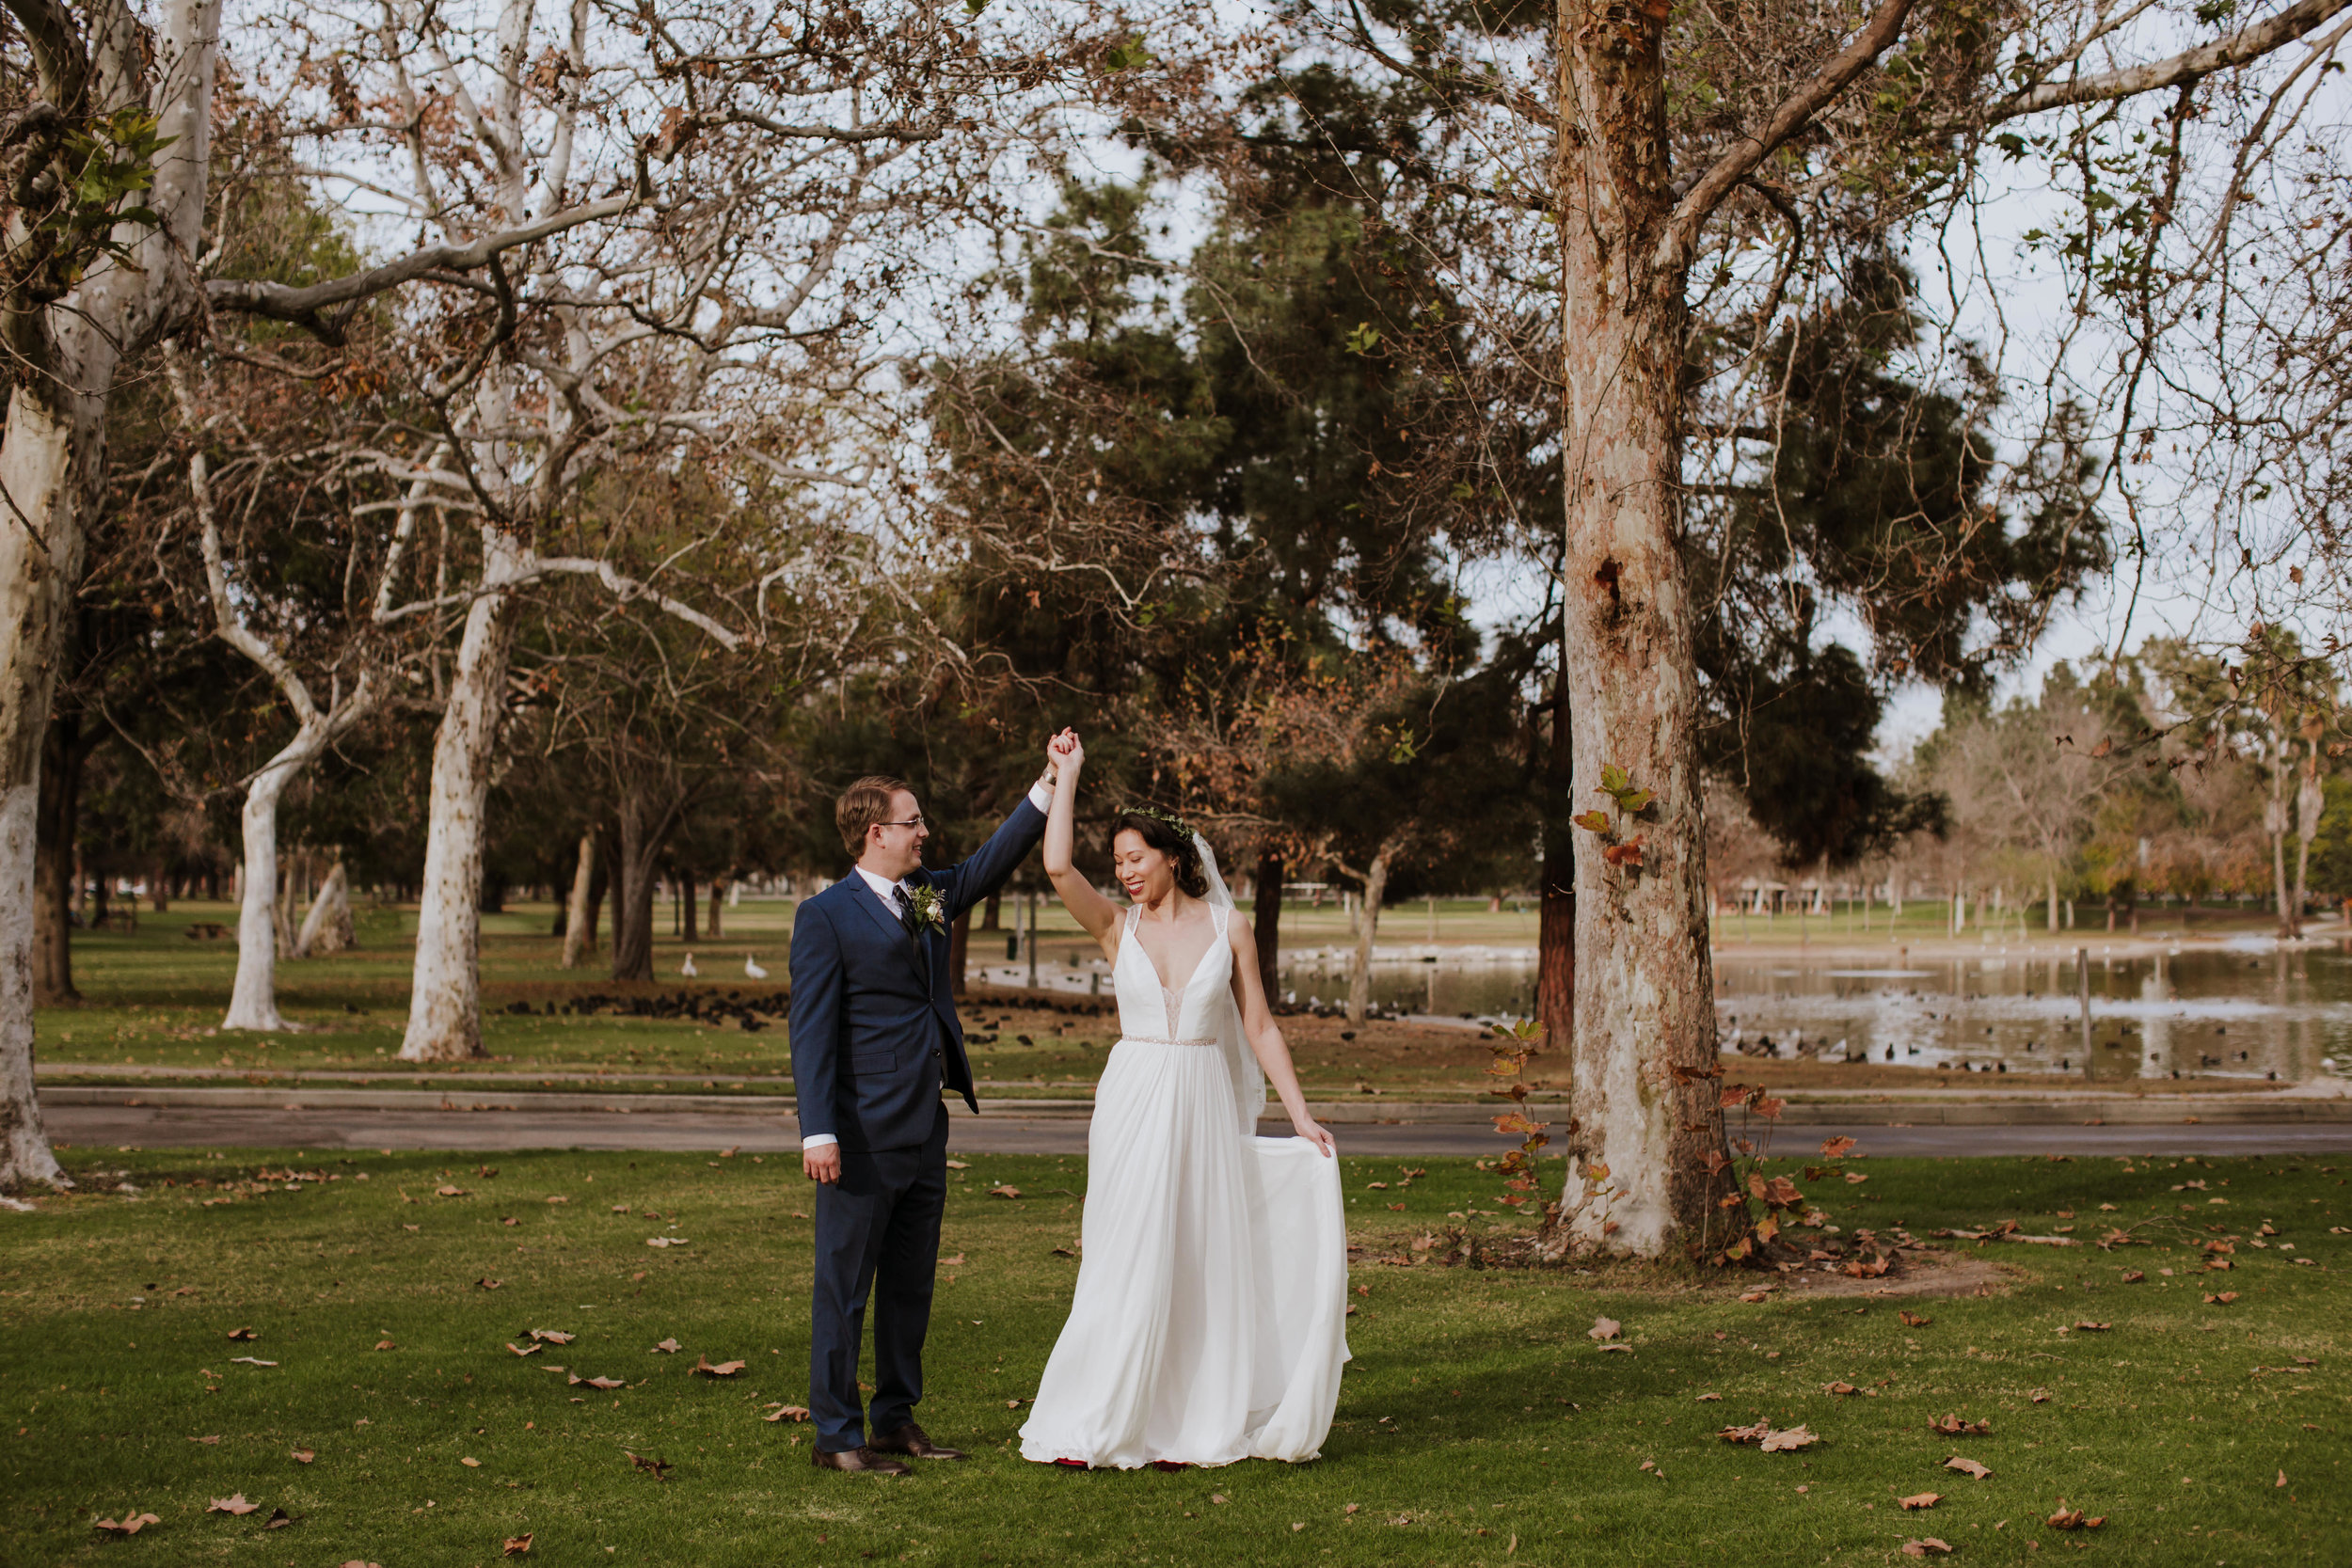 Melissa and Doug El Dorado Park Golf Course Long Beach Wedding -74.jpg